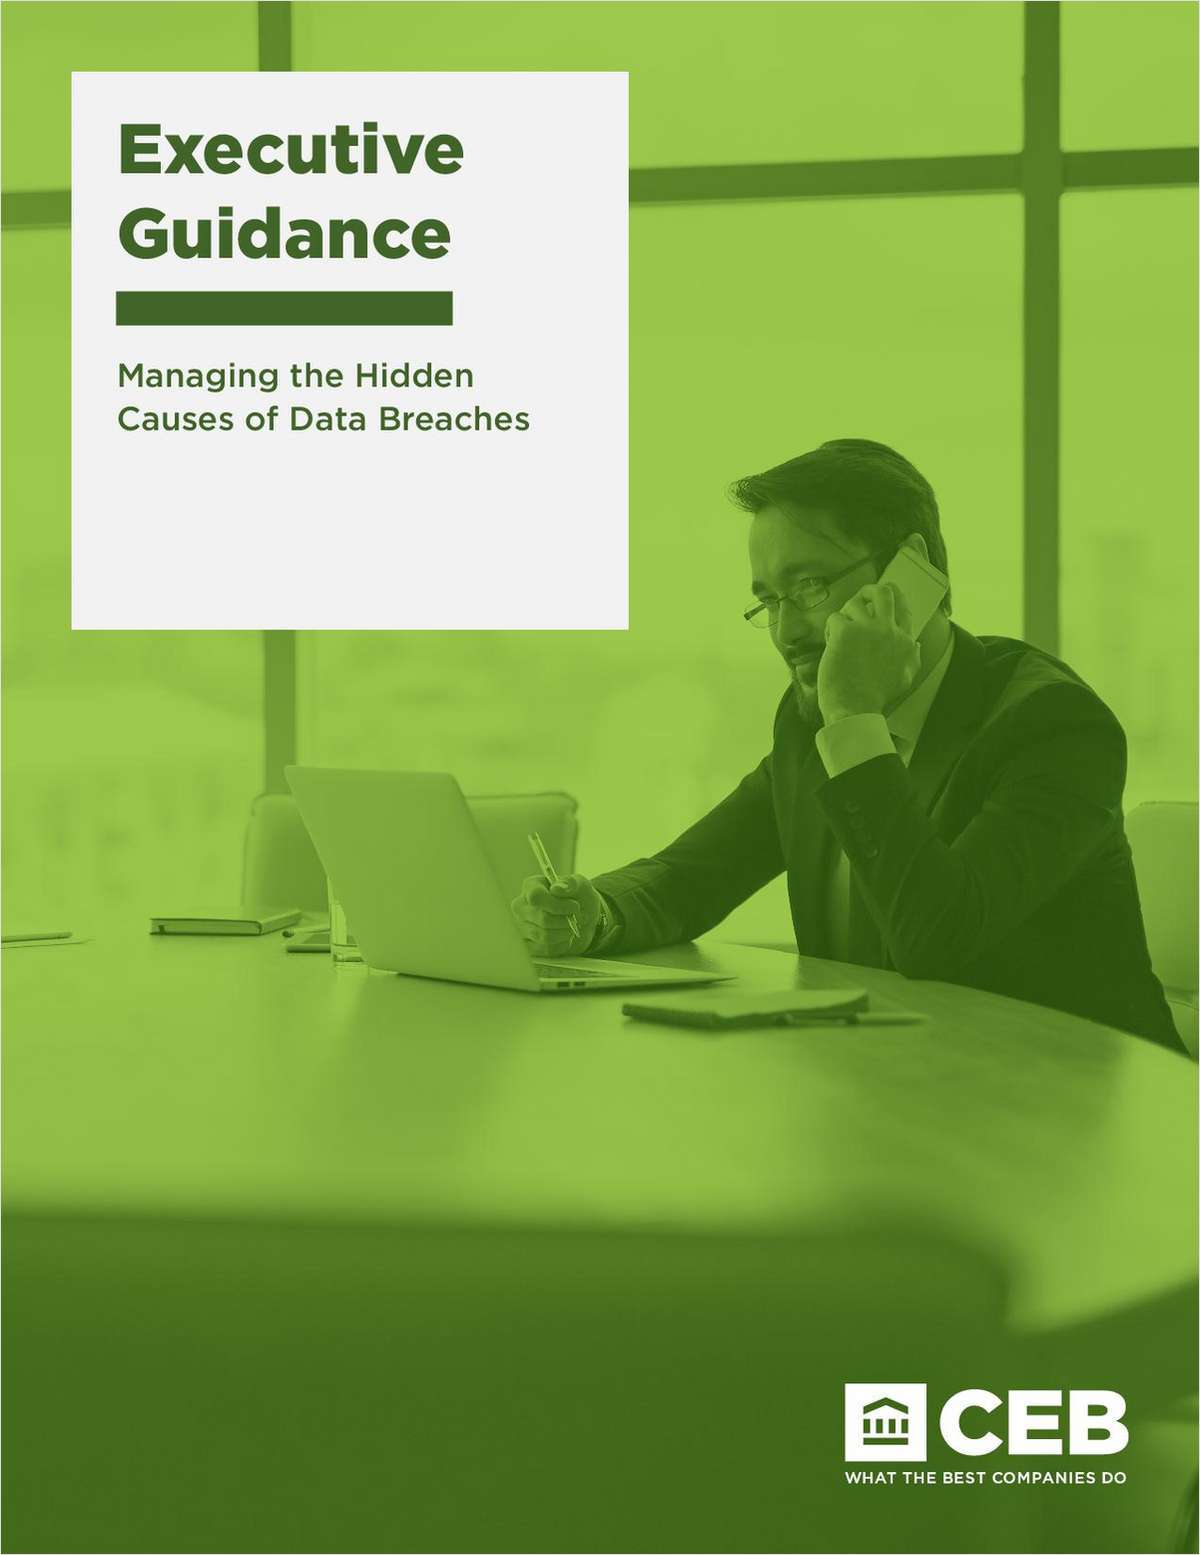 Managing the Hidden Causes of Data Breaches